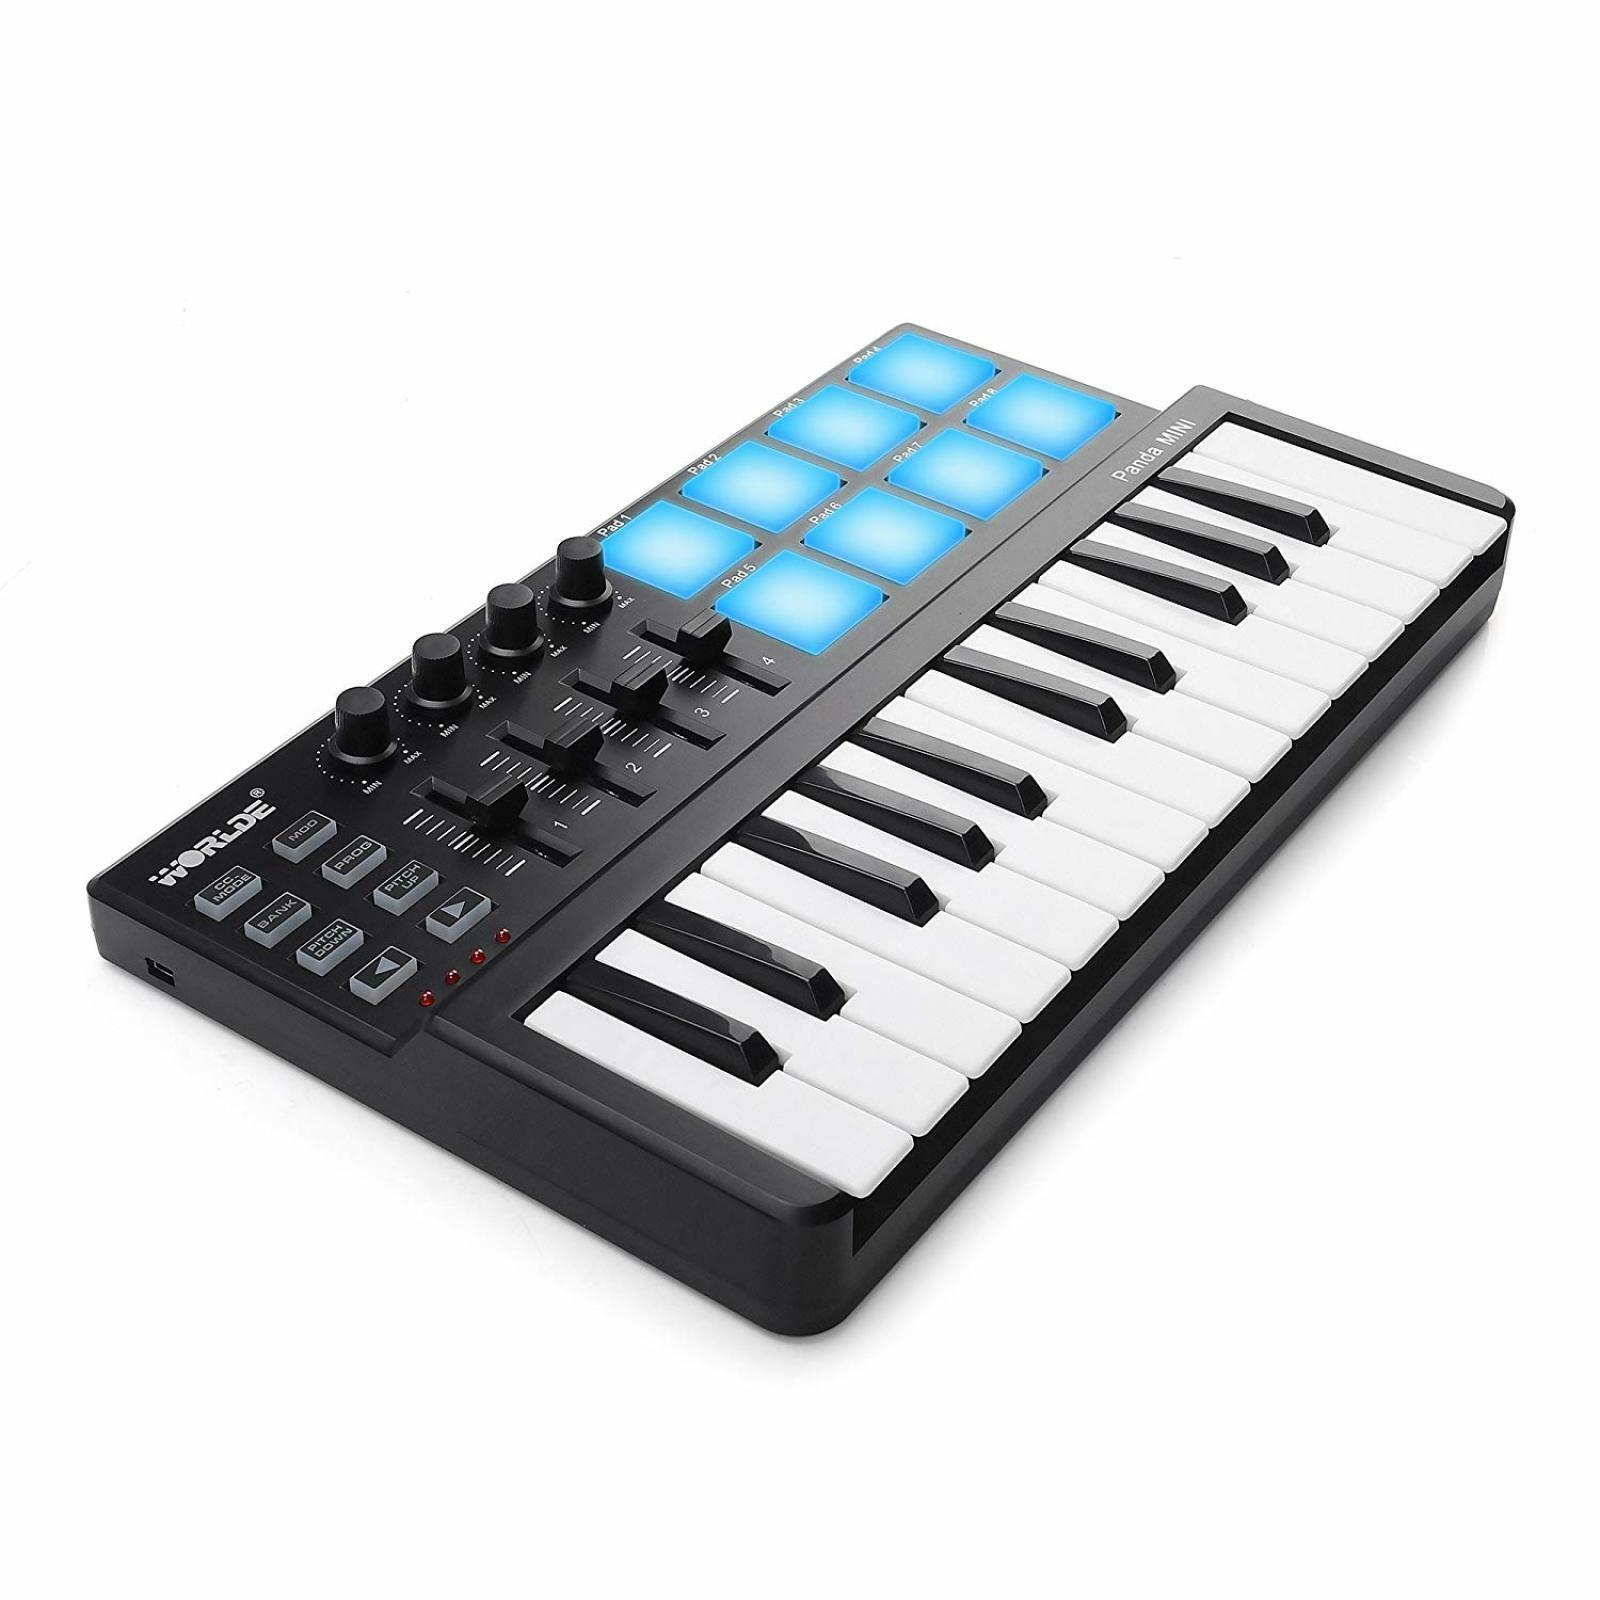 Details about Beat & Music Maker DJ Piano USB MIDI Color Drum Pad &  Keyboard Controller 25 Key